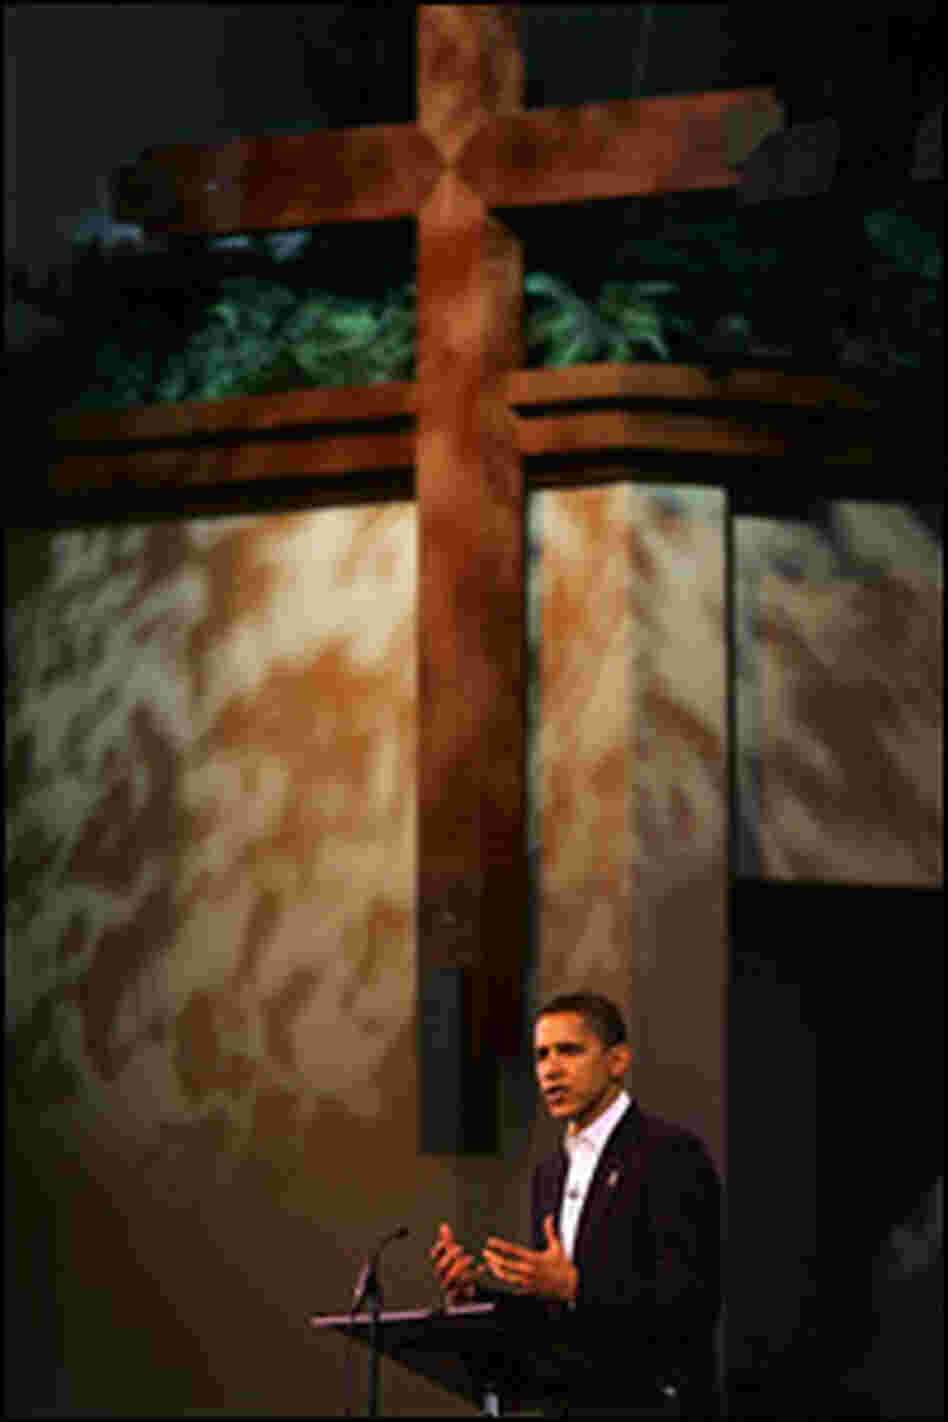 Sen. Barack Obama speaks at the Saddleback Church